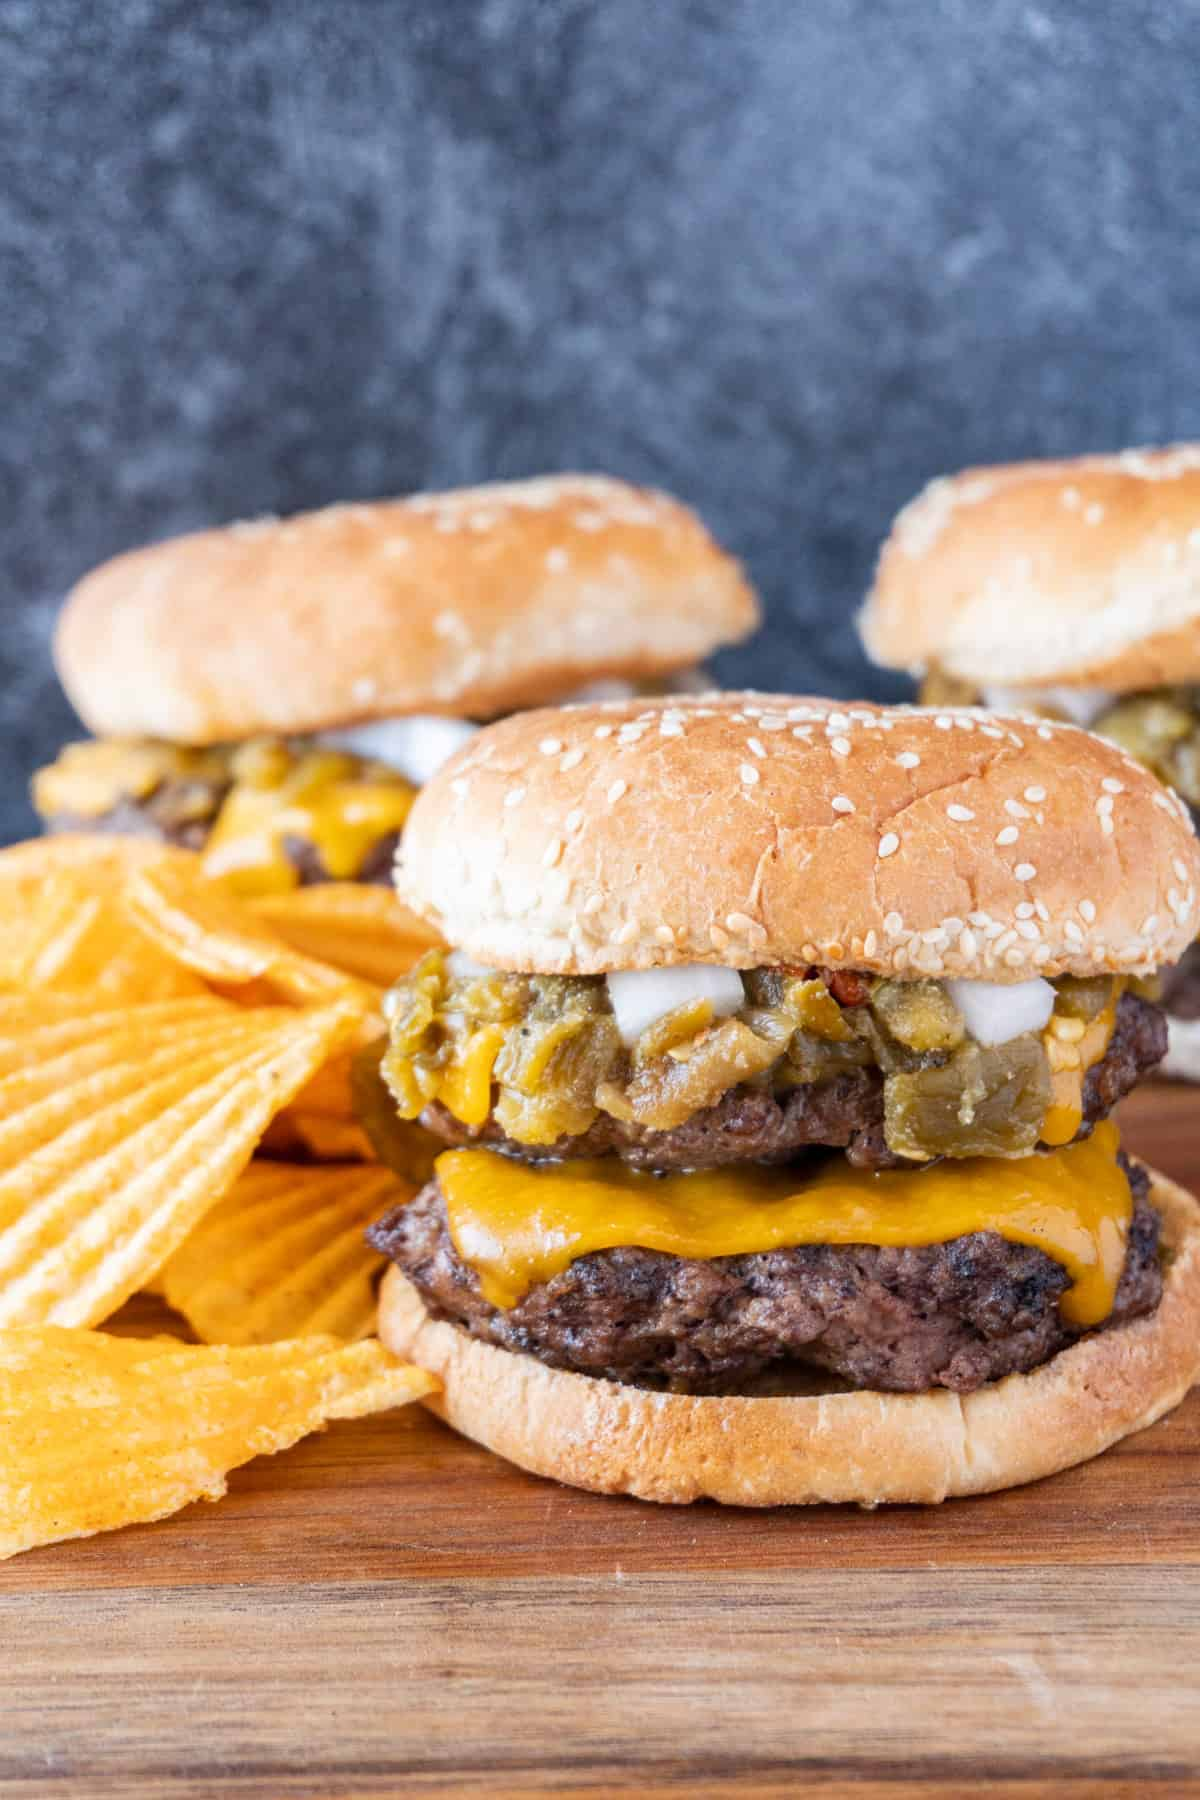 Green Chile Cheeseburger with chips